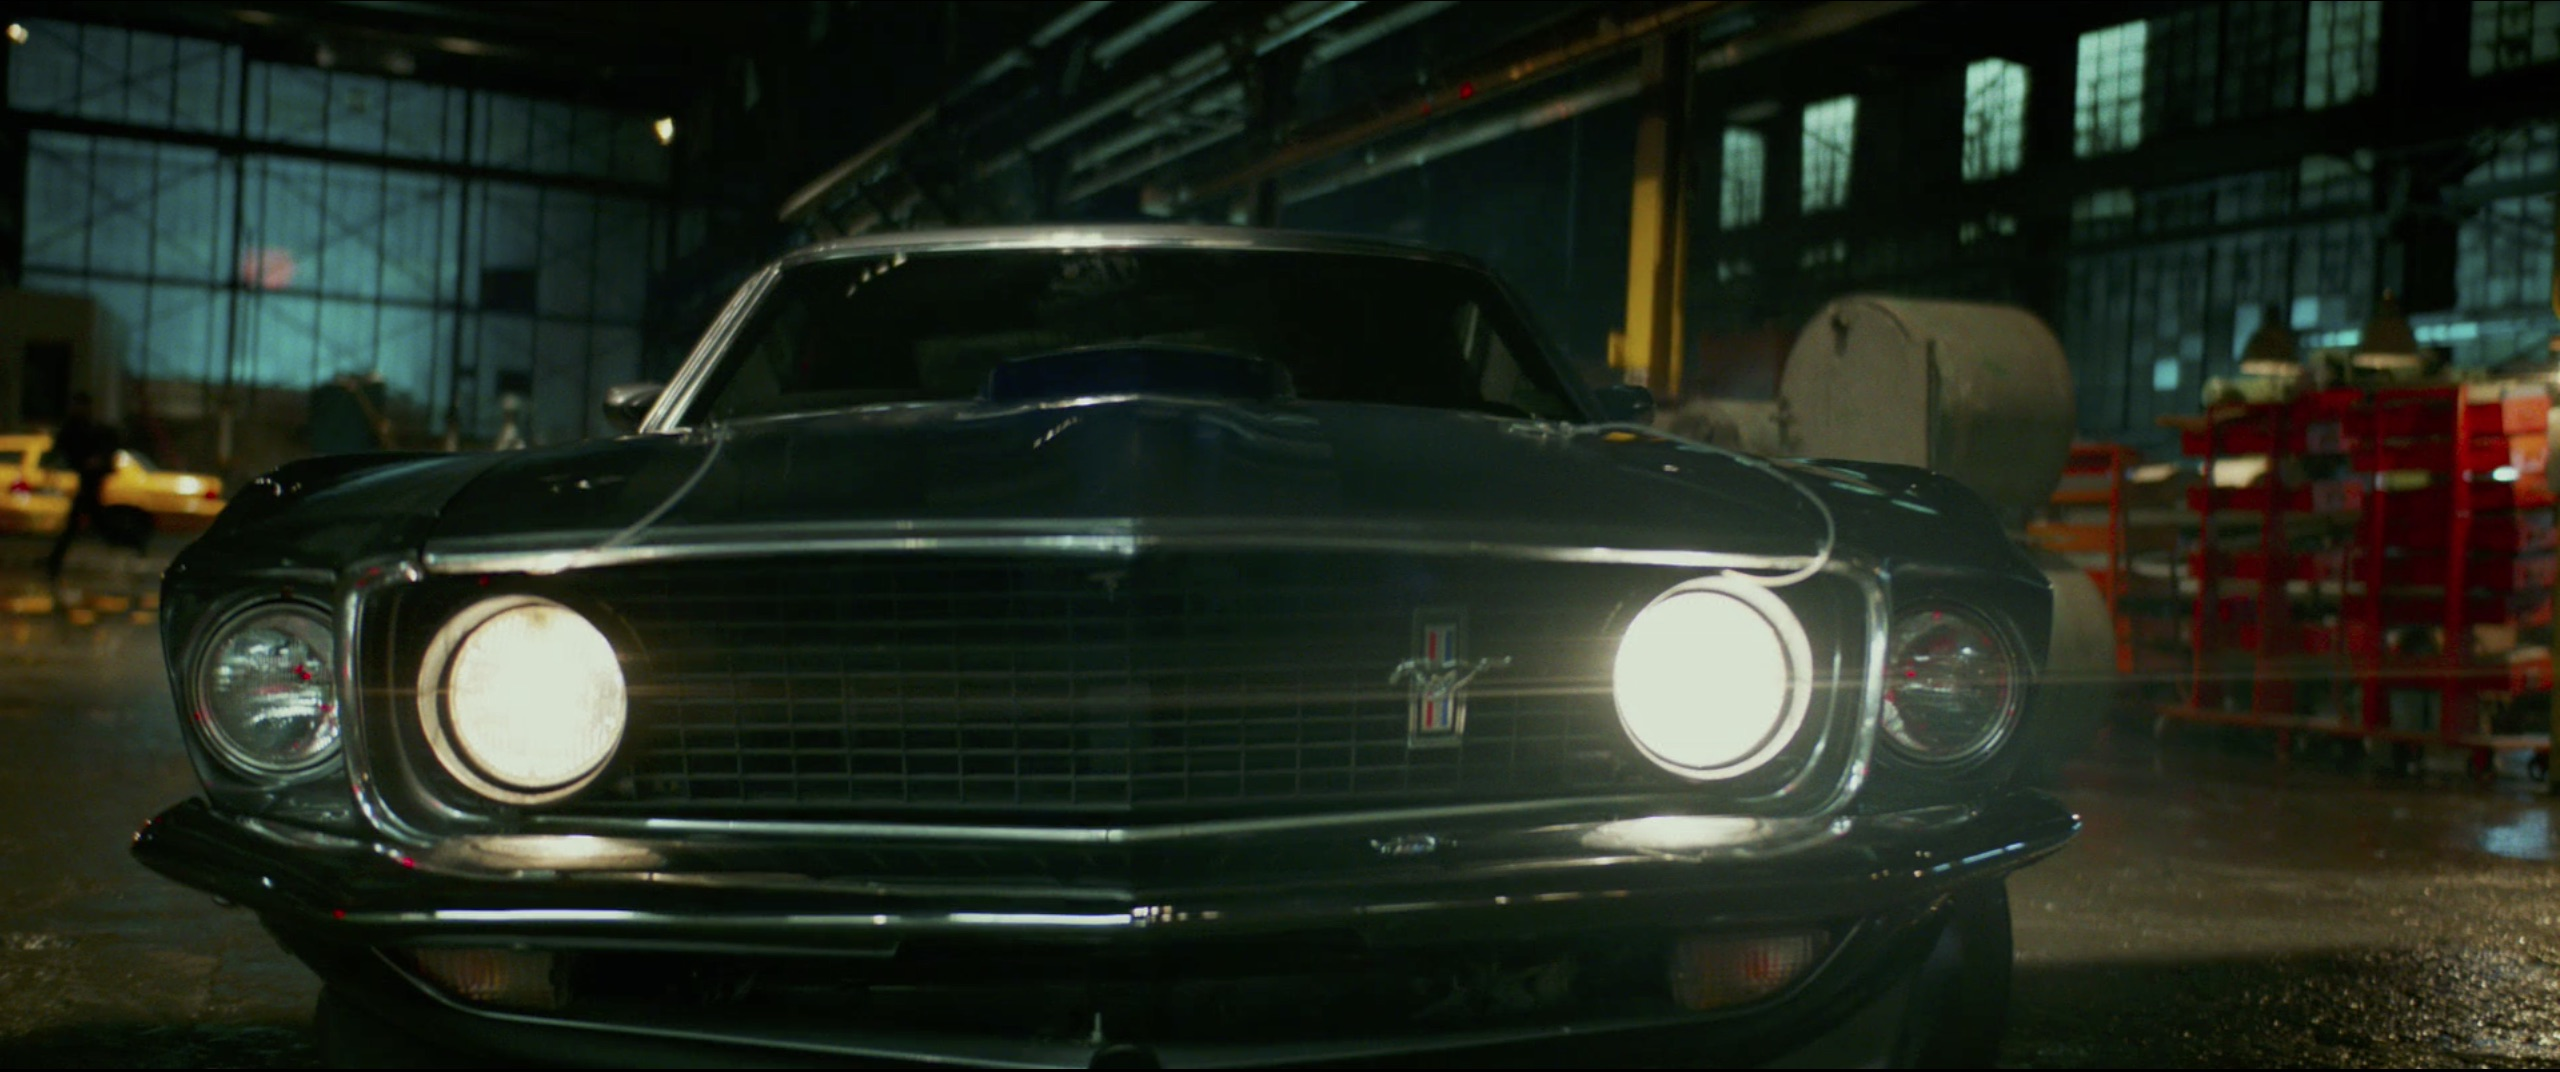 John Wick: Chapter 2 front of 1969 Ford Mustang